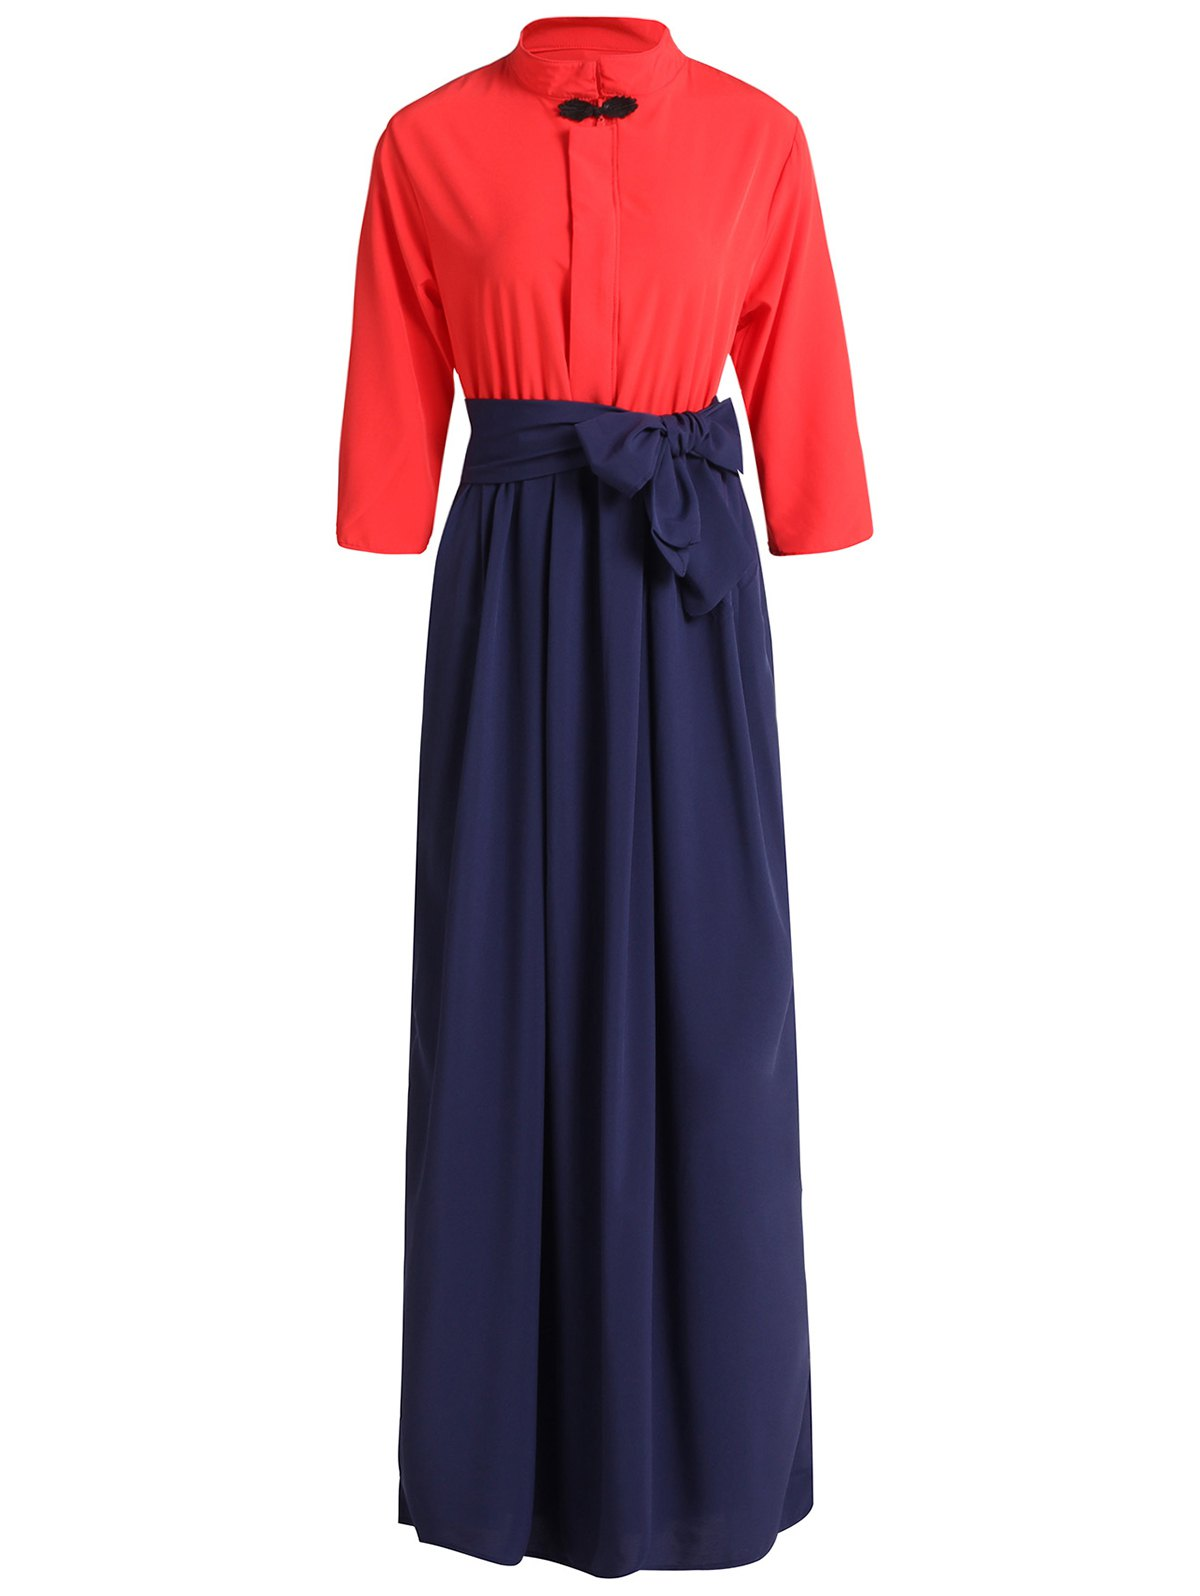 Sweet Bowknot Stand Collar 3/4 Sleeve Dress For Women